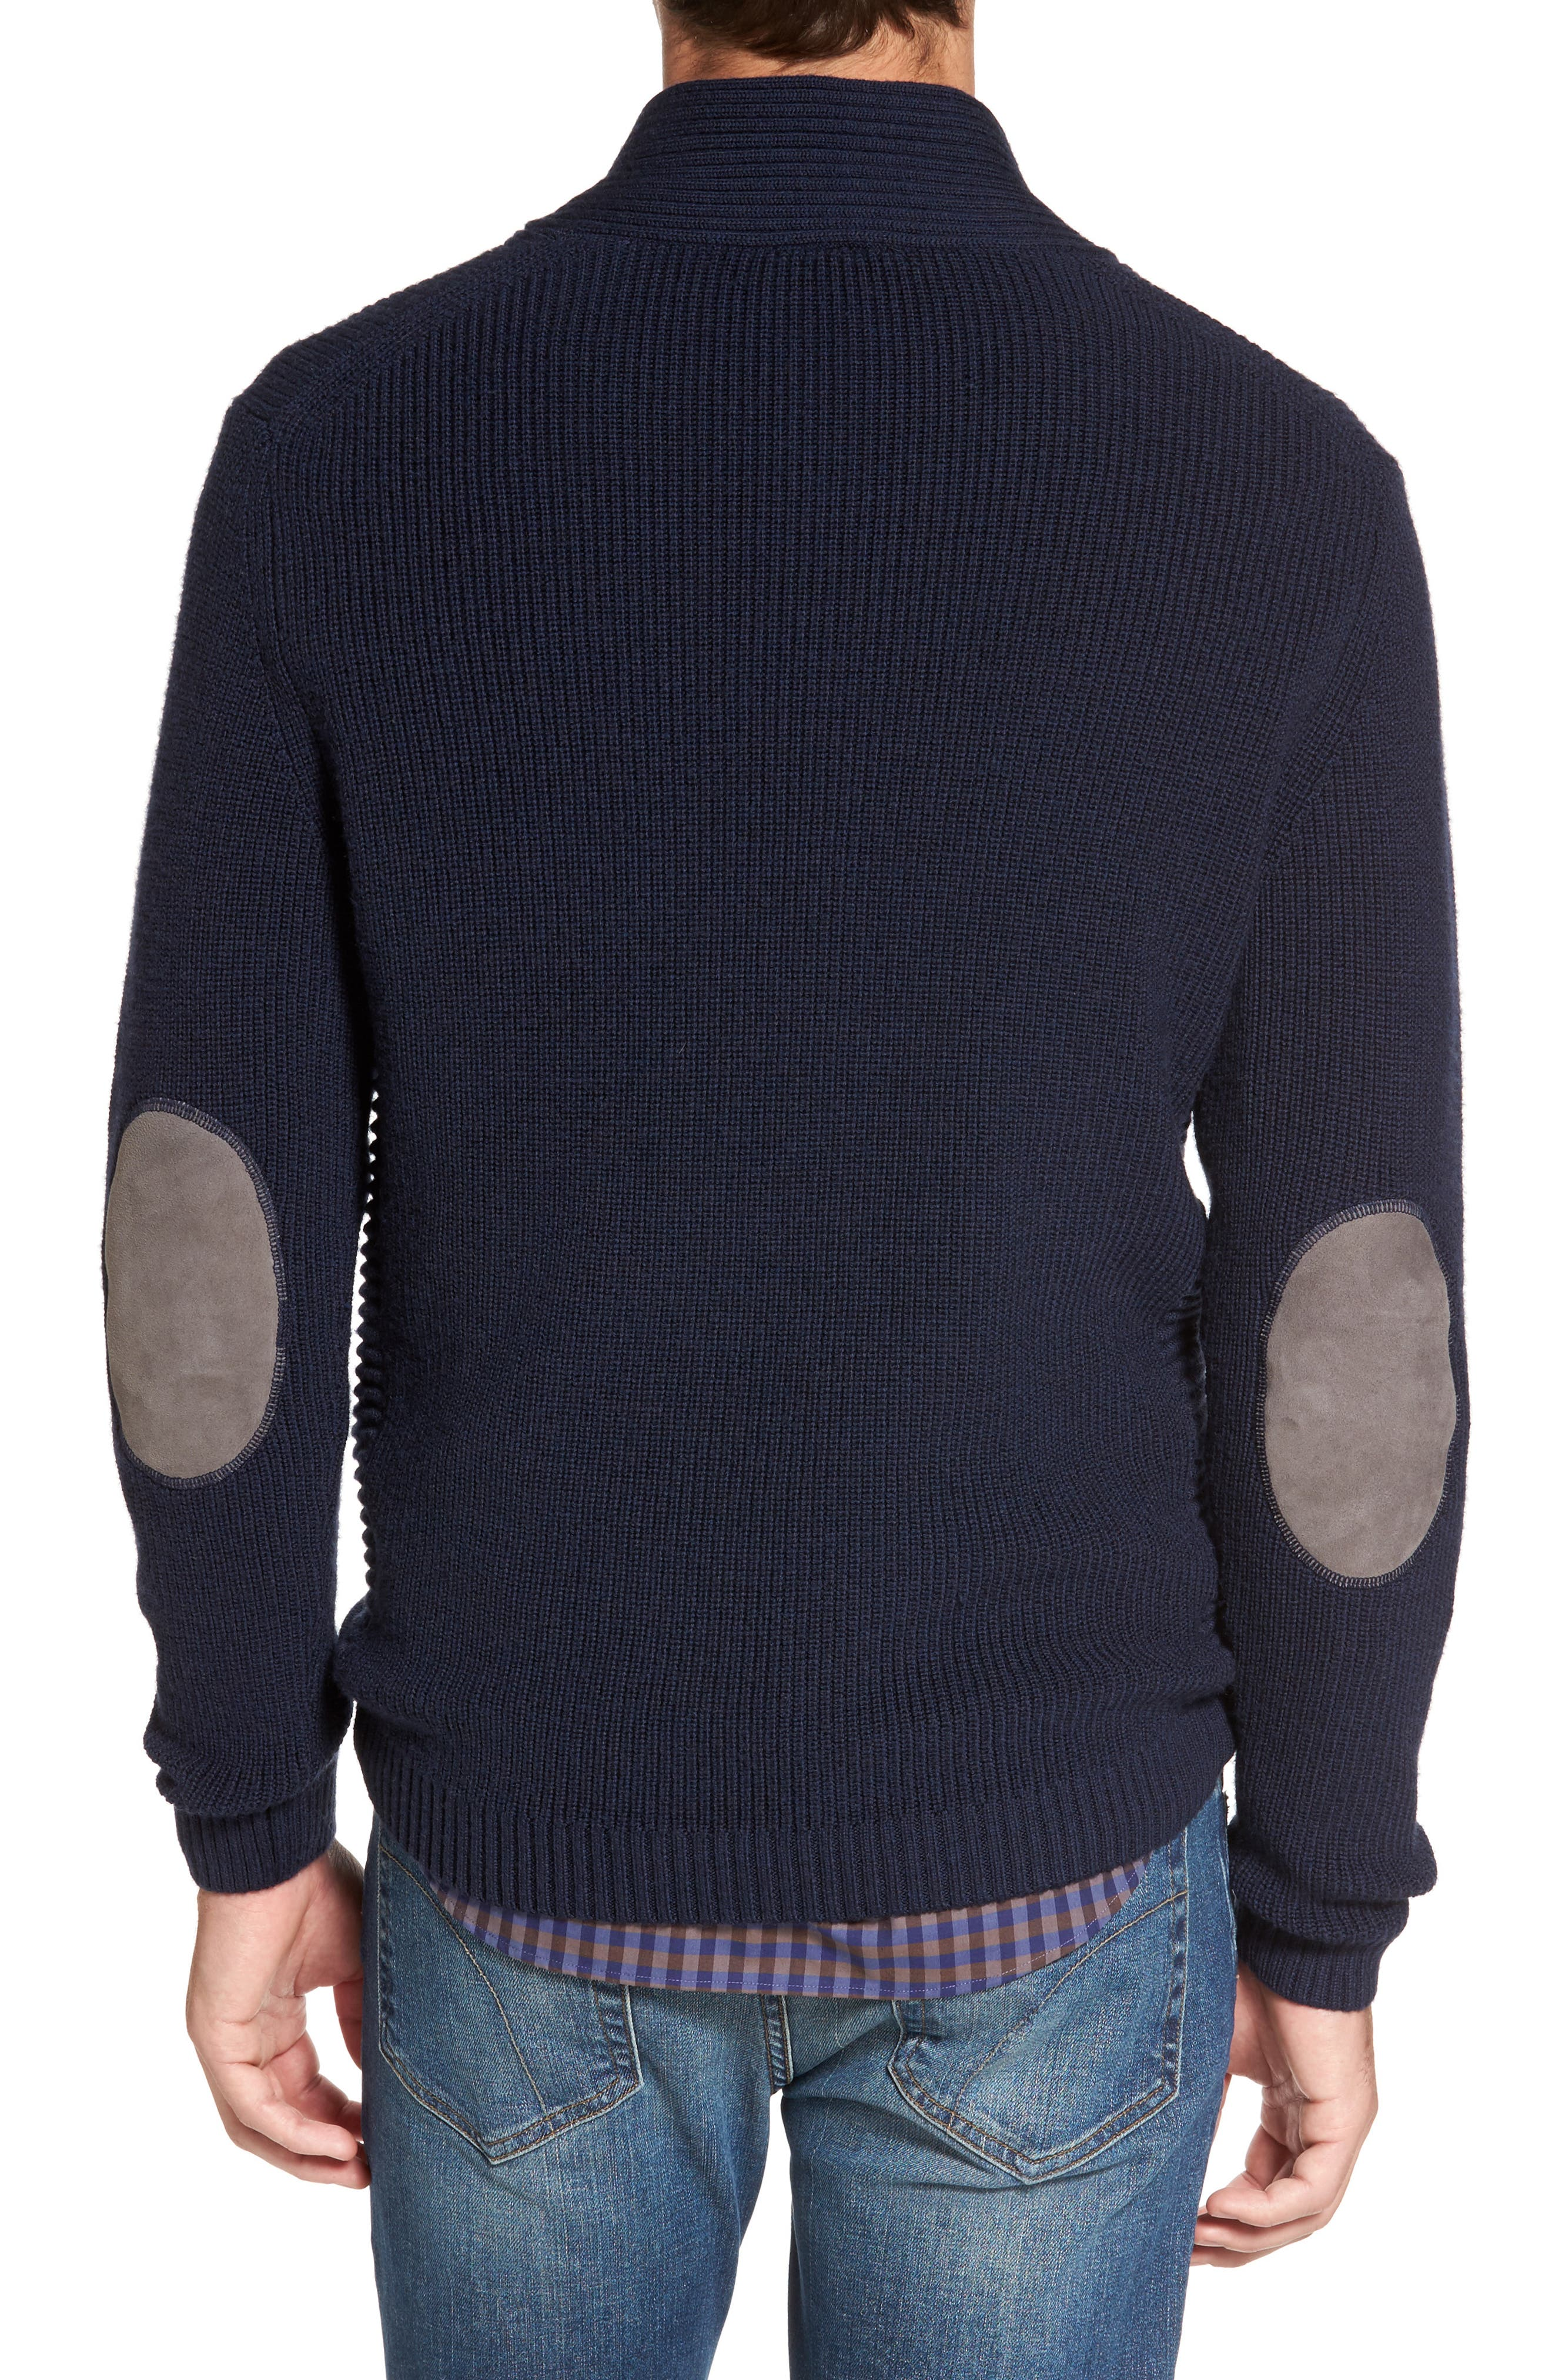 Charlesworth Suede Patch Merino Wool Sweater,                             Alternate thumbnail 2, color,                             432